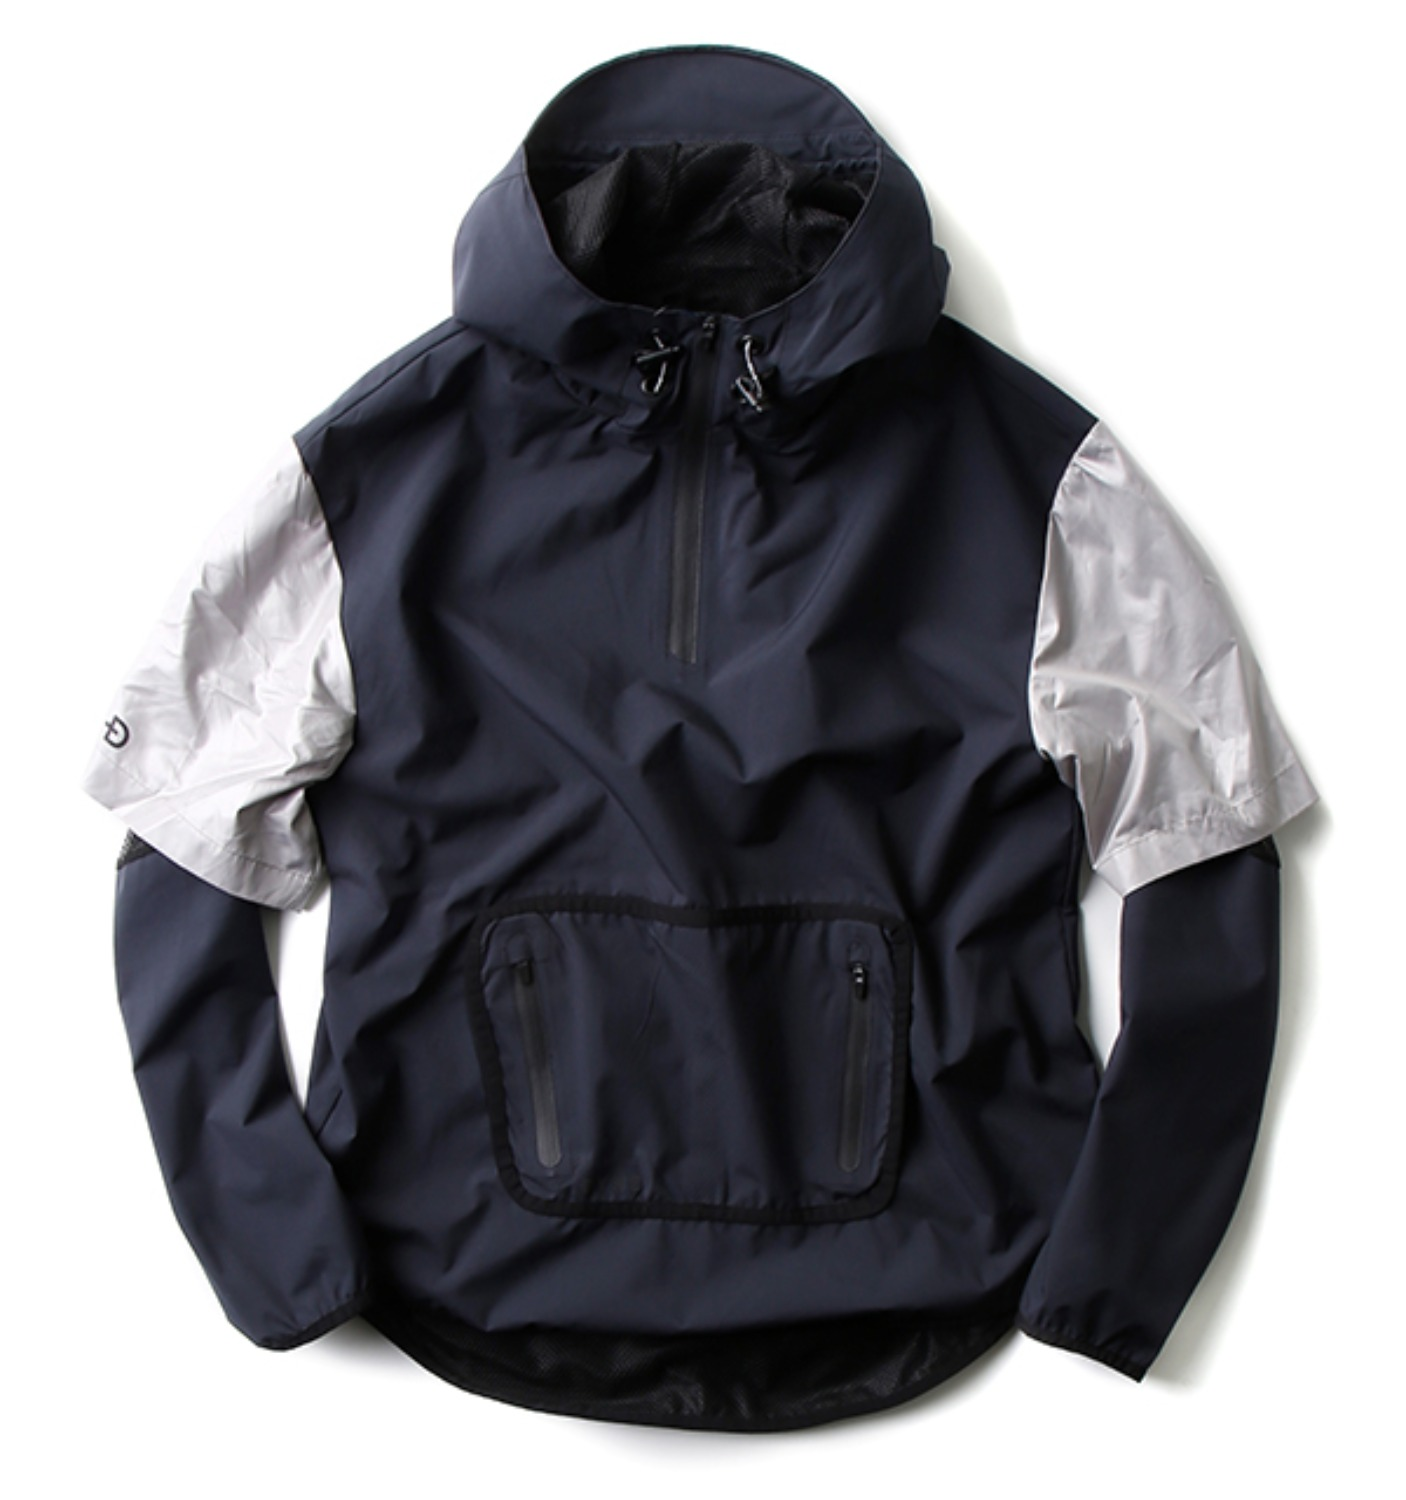 D3014 Ampere Popover Technical Windbreaker Black